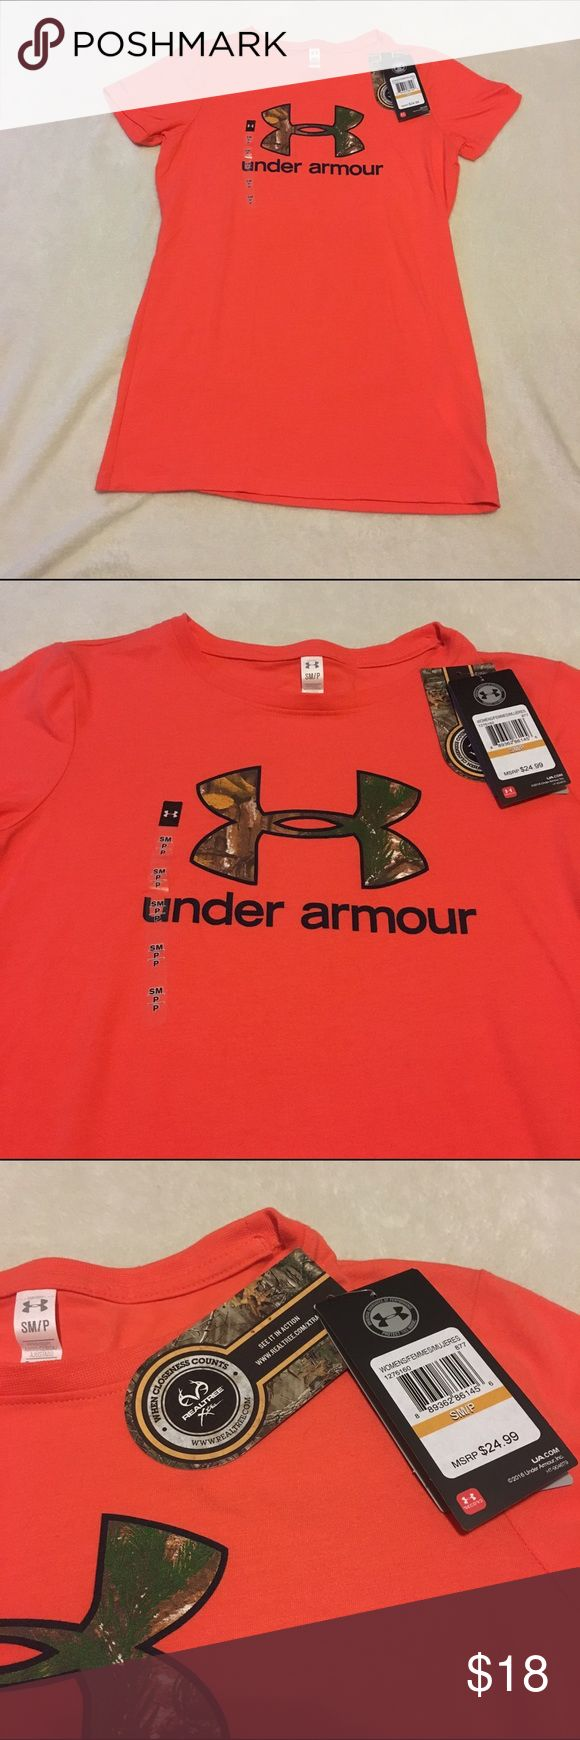 Under armour hunting camo tee shirt Brand new with tags! Originally $25. Size small. Feel free to make an offer! Under Armour Tops Tees - Short Sleeve